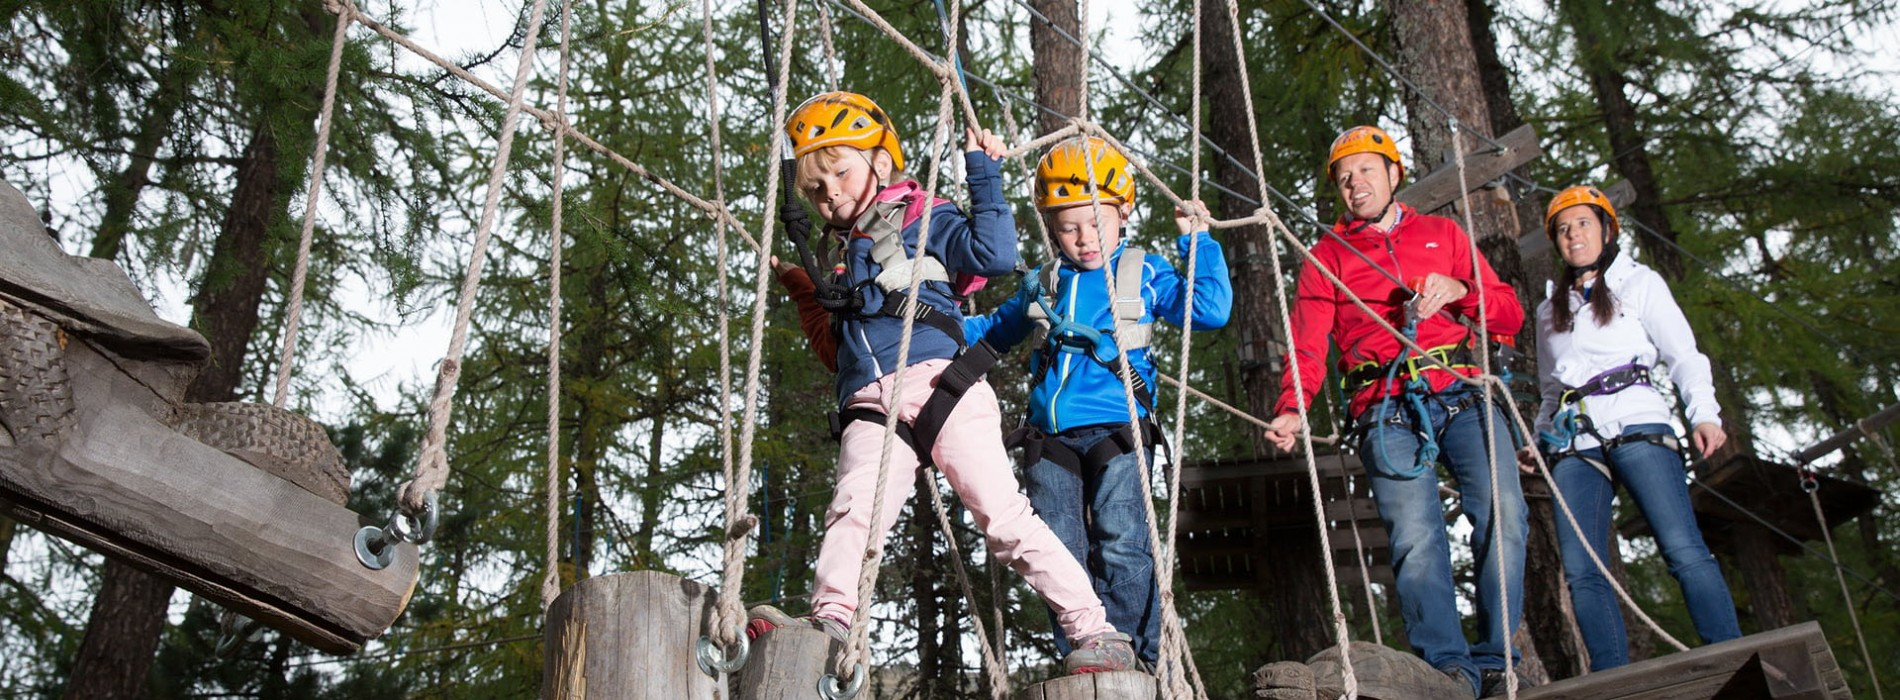 Spend this Summer exploring adventure activities with your family at St. Moritz